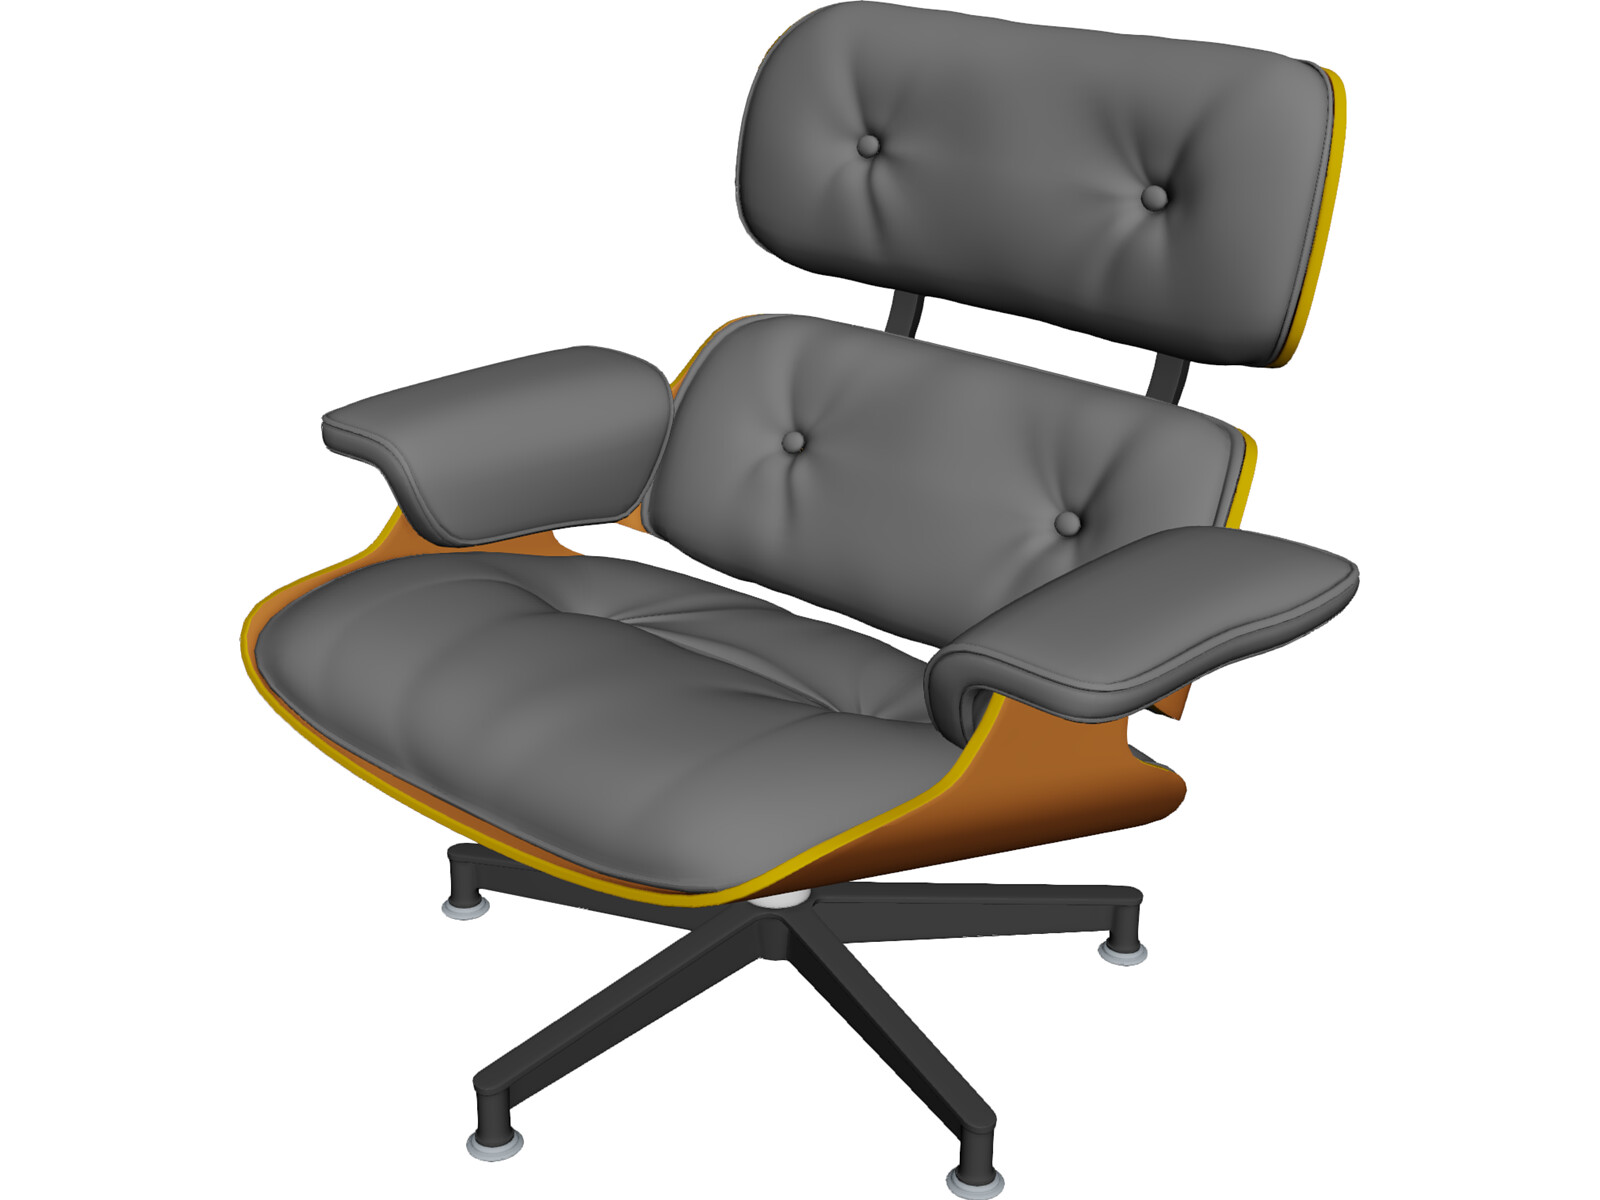 Eames lounge chair 3d model 3d cad browser for Chair 3d model maya